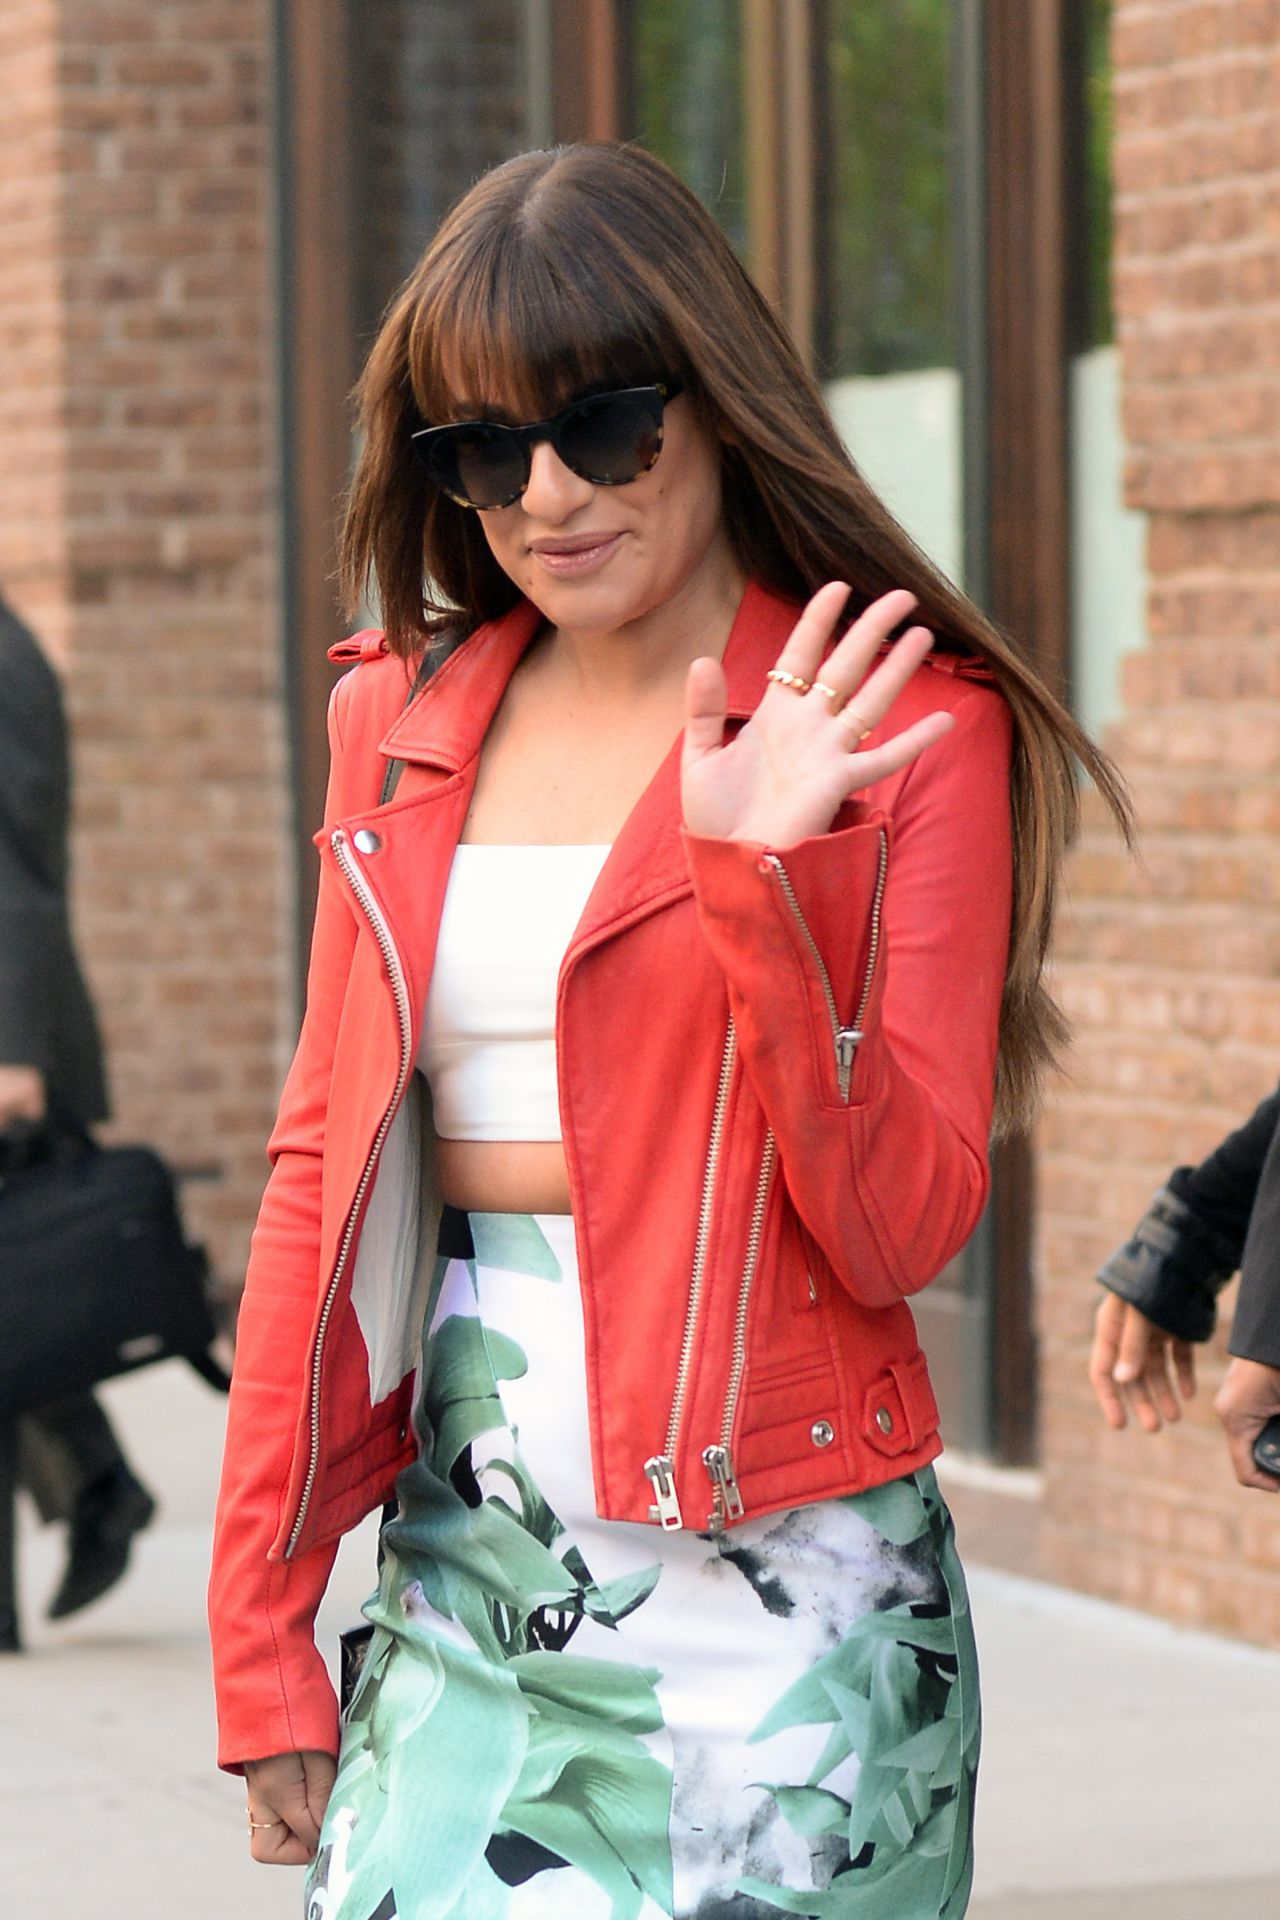 Lea Michele Casual Style - Heading Out From Her Hotel in New York City - May 2014